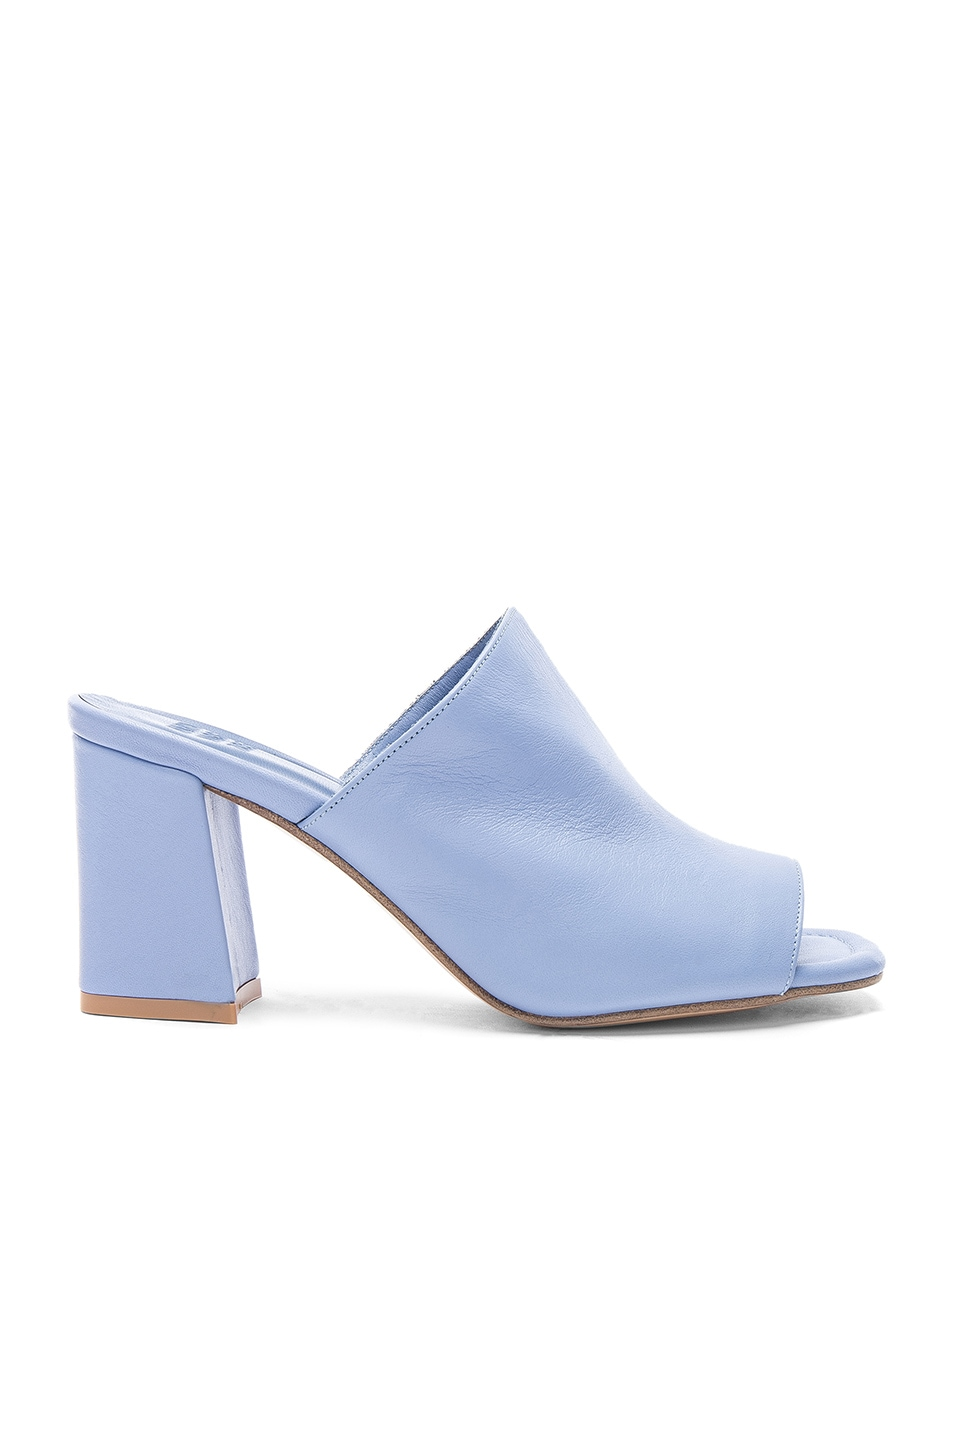 Image 1 of Maryam Nassir Zadeh Leather Penelope Mules in Periwinkle Calf